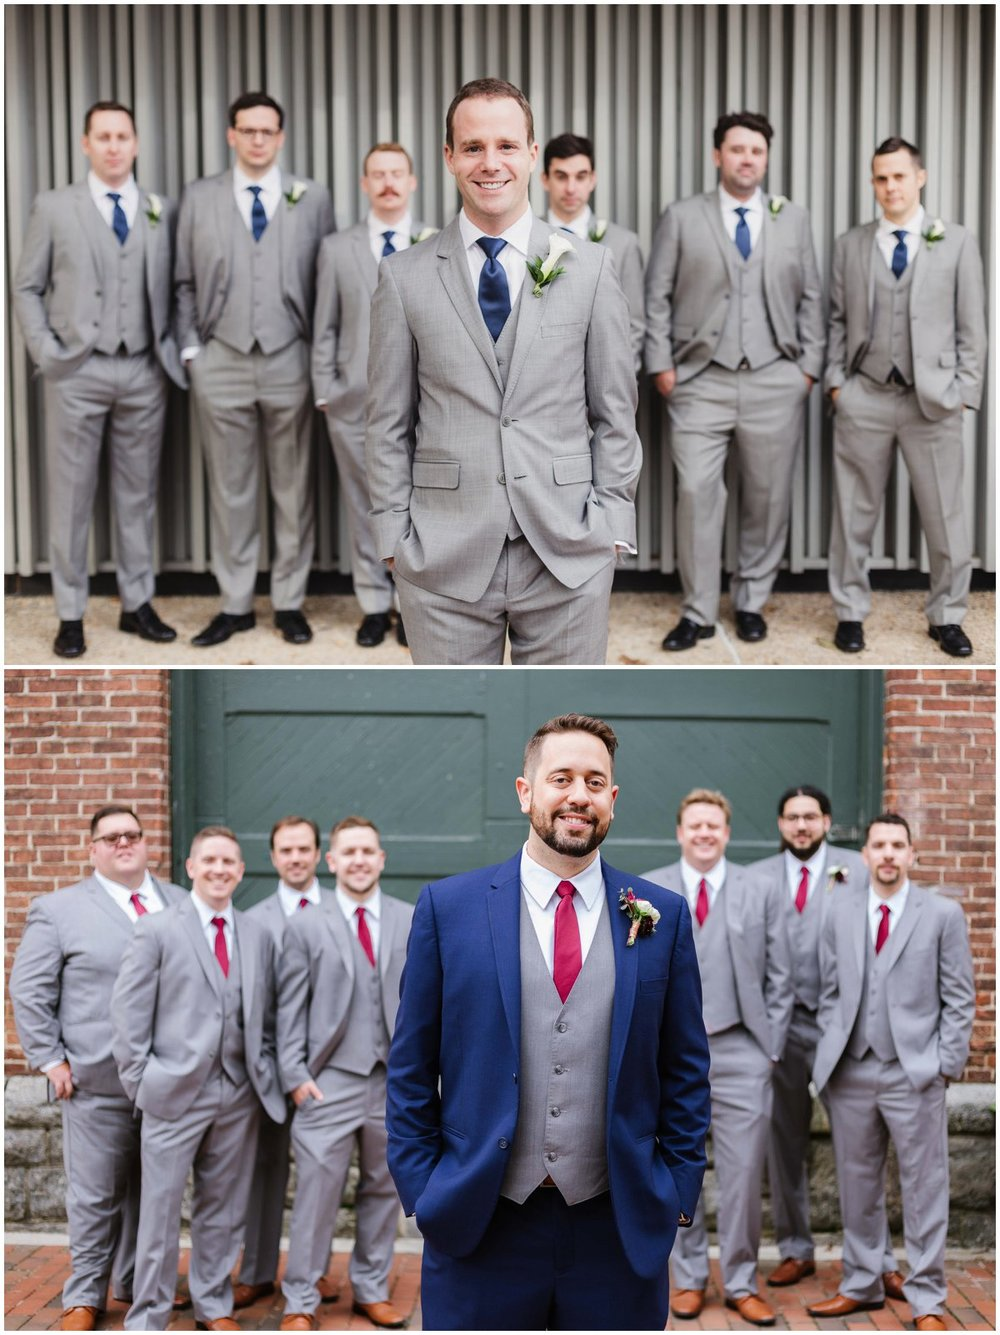 urban-row-photography-rosewood-farms-gray-navy-groomsmen_0011.jpg